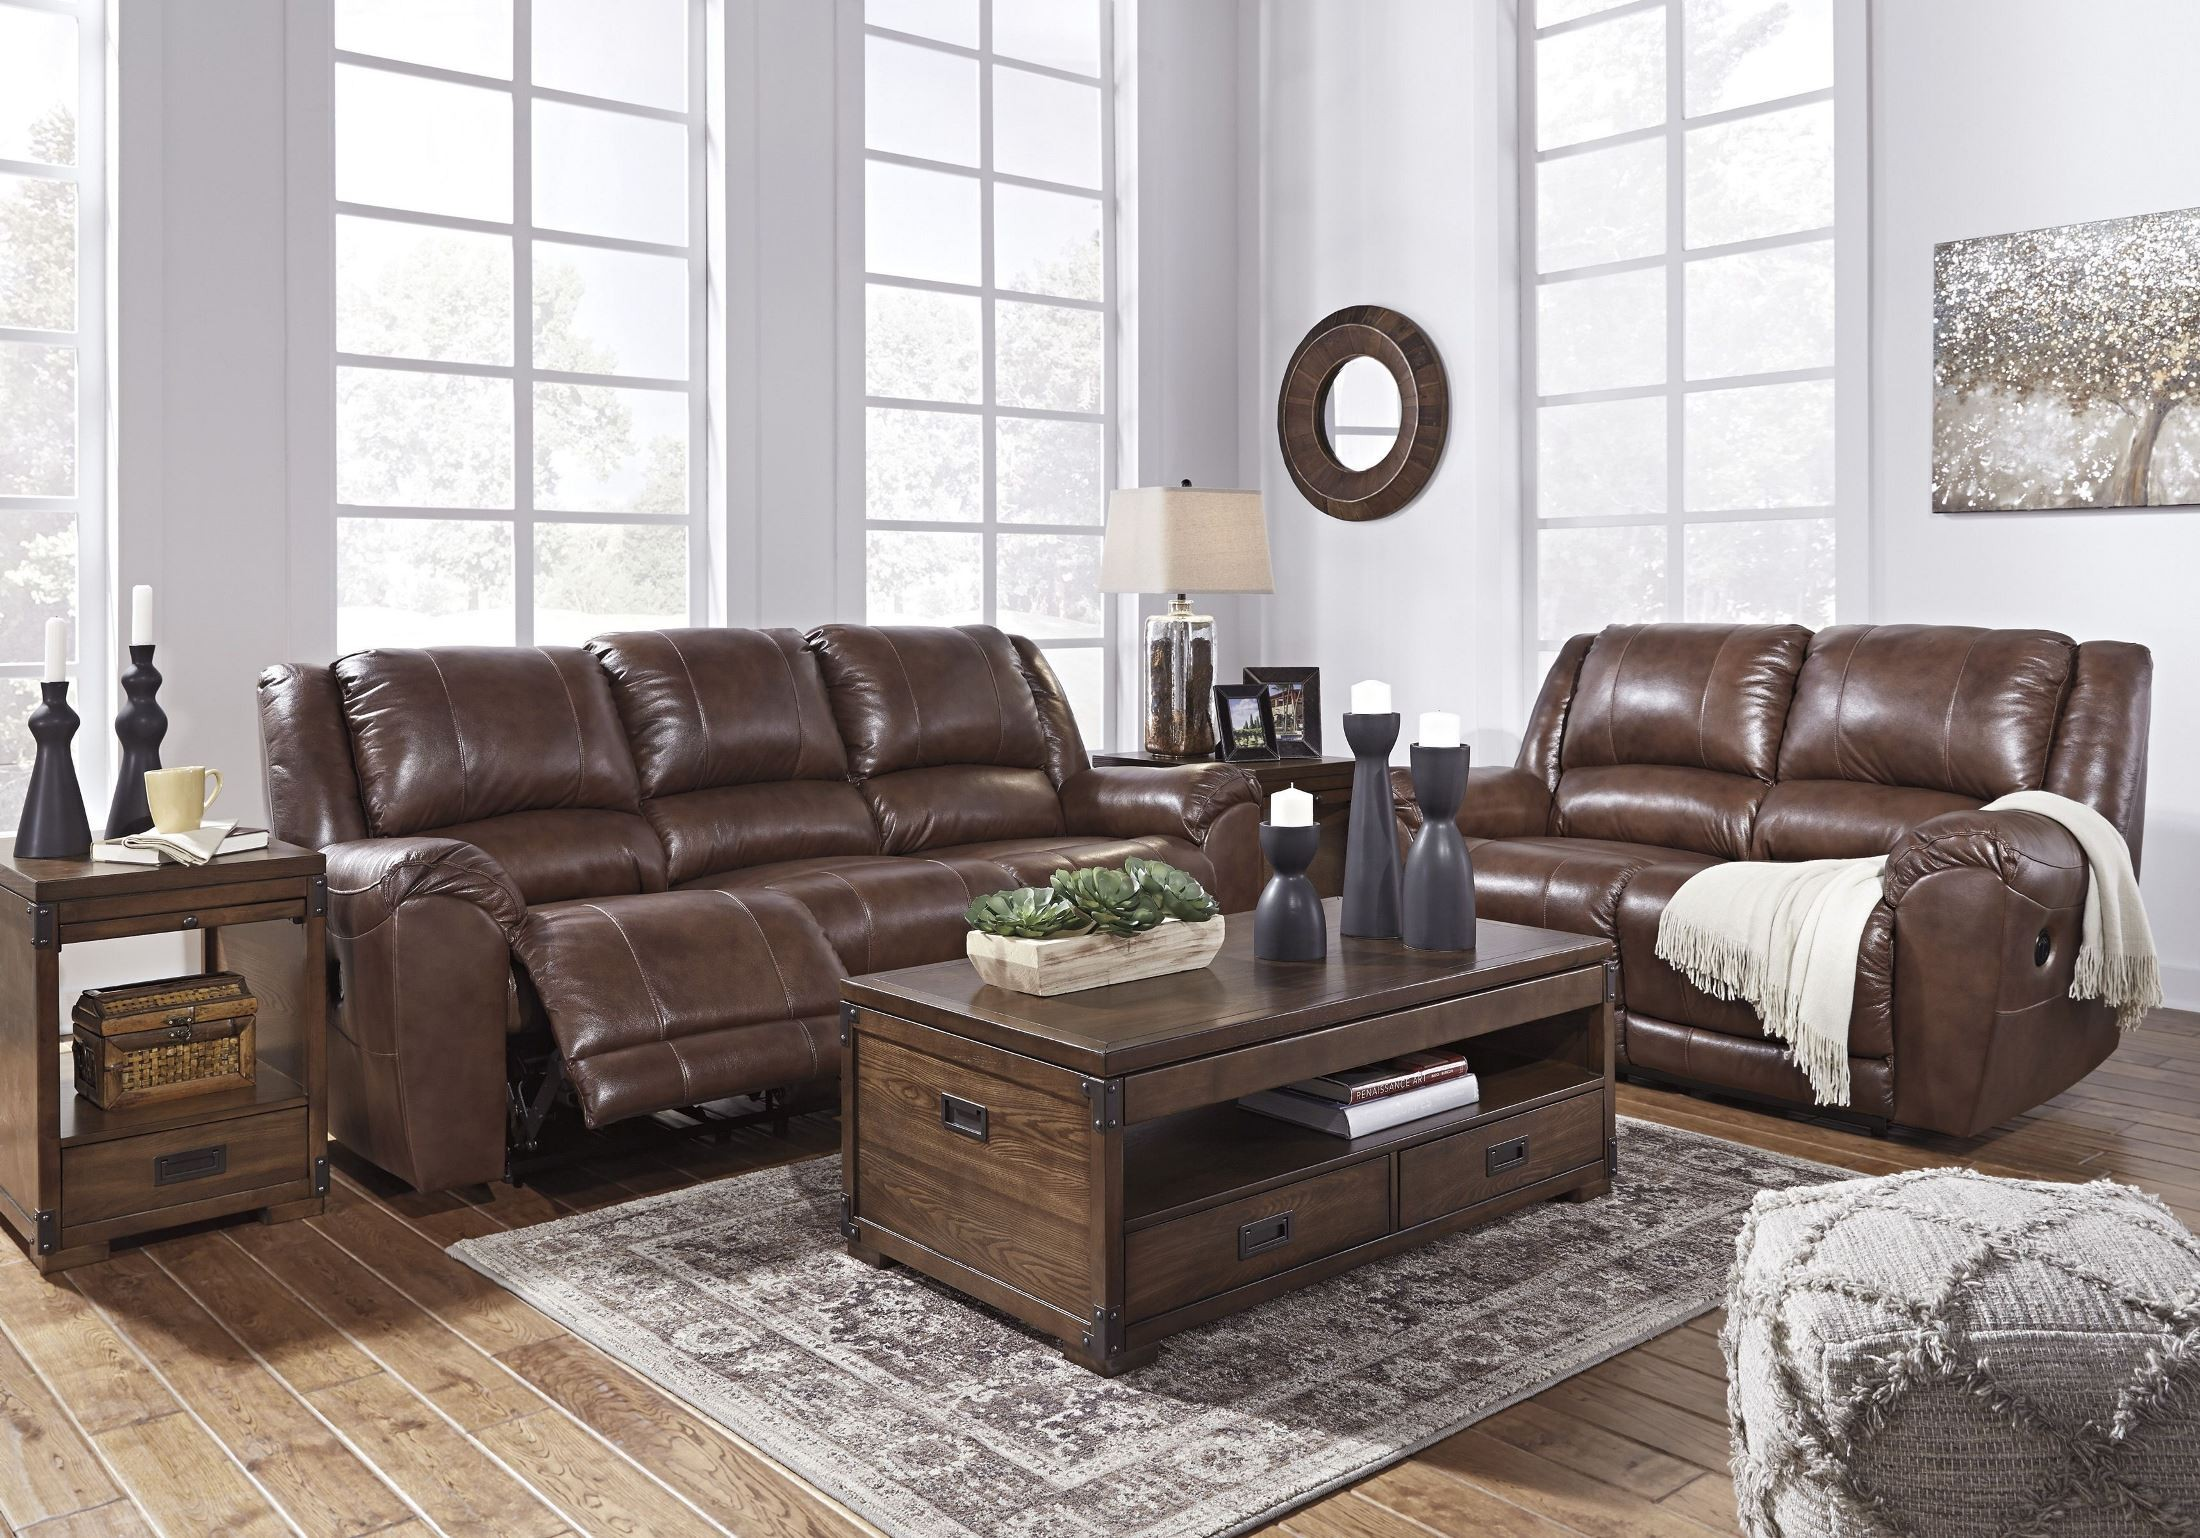 Persiphone Canyon Power Reclining Living Room Set From